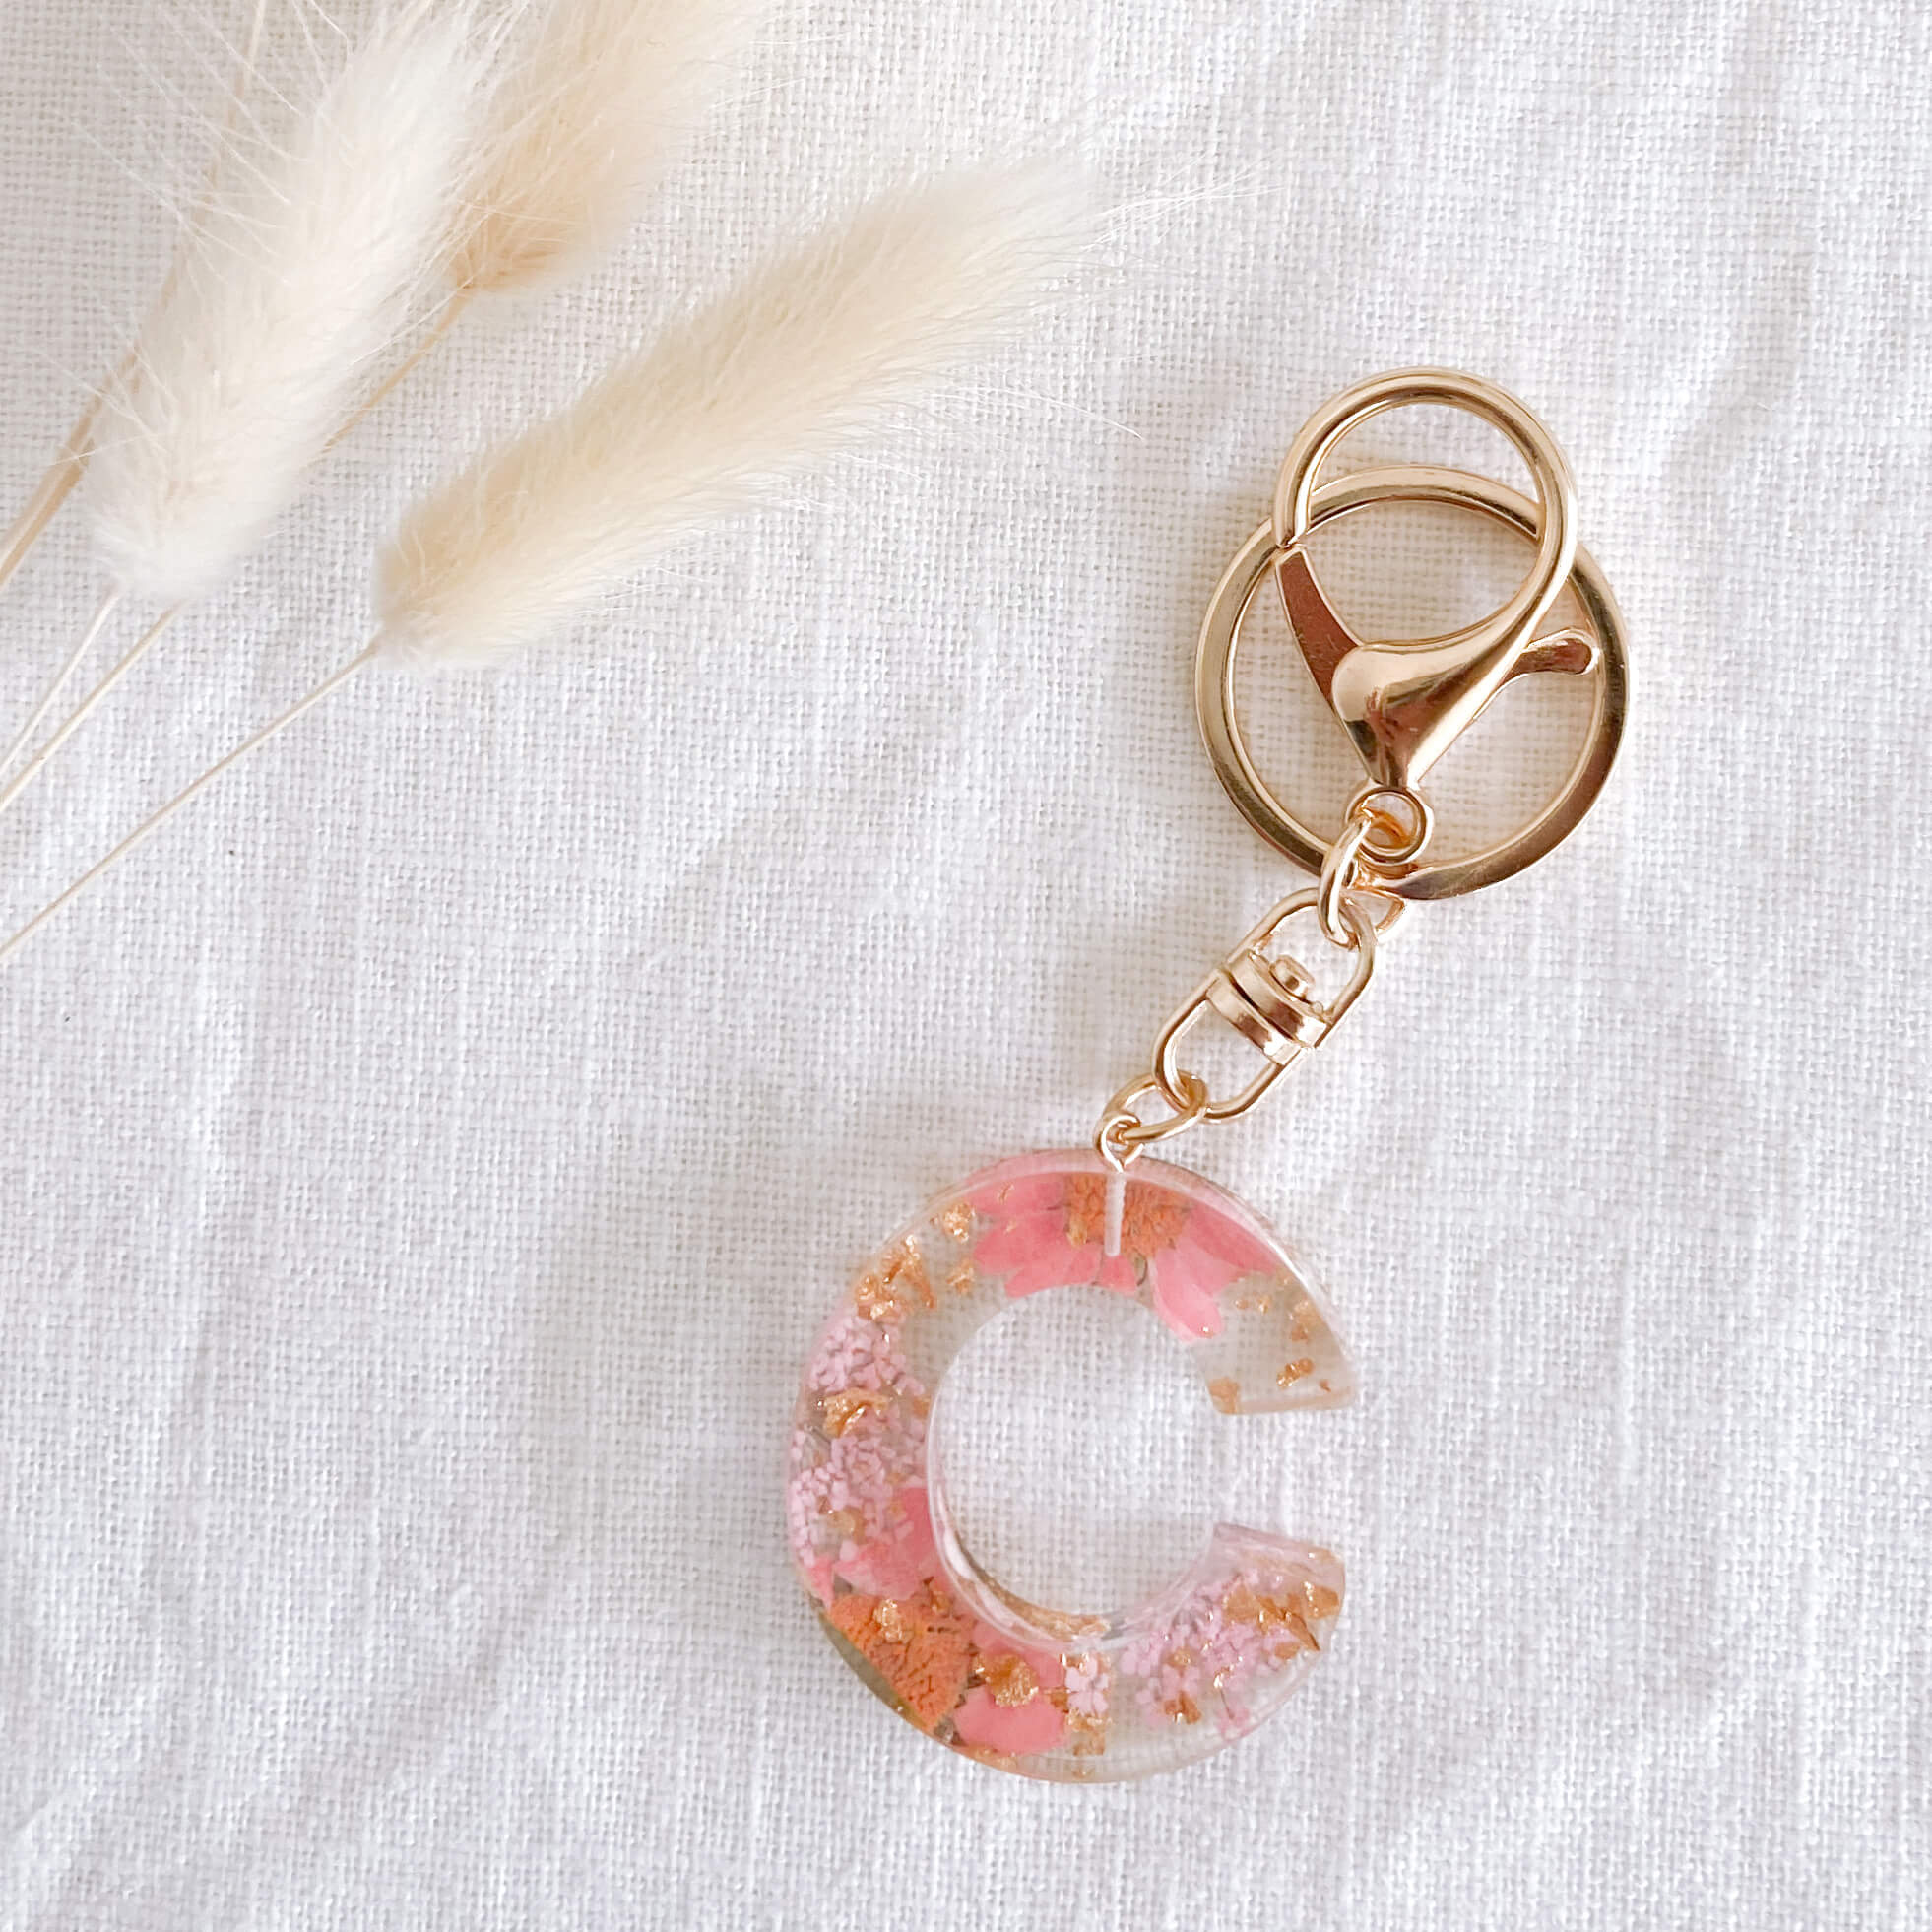 Pink Flower Keychain made from Resin with Gold clasp. Perfect for backpack, handbag or bag